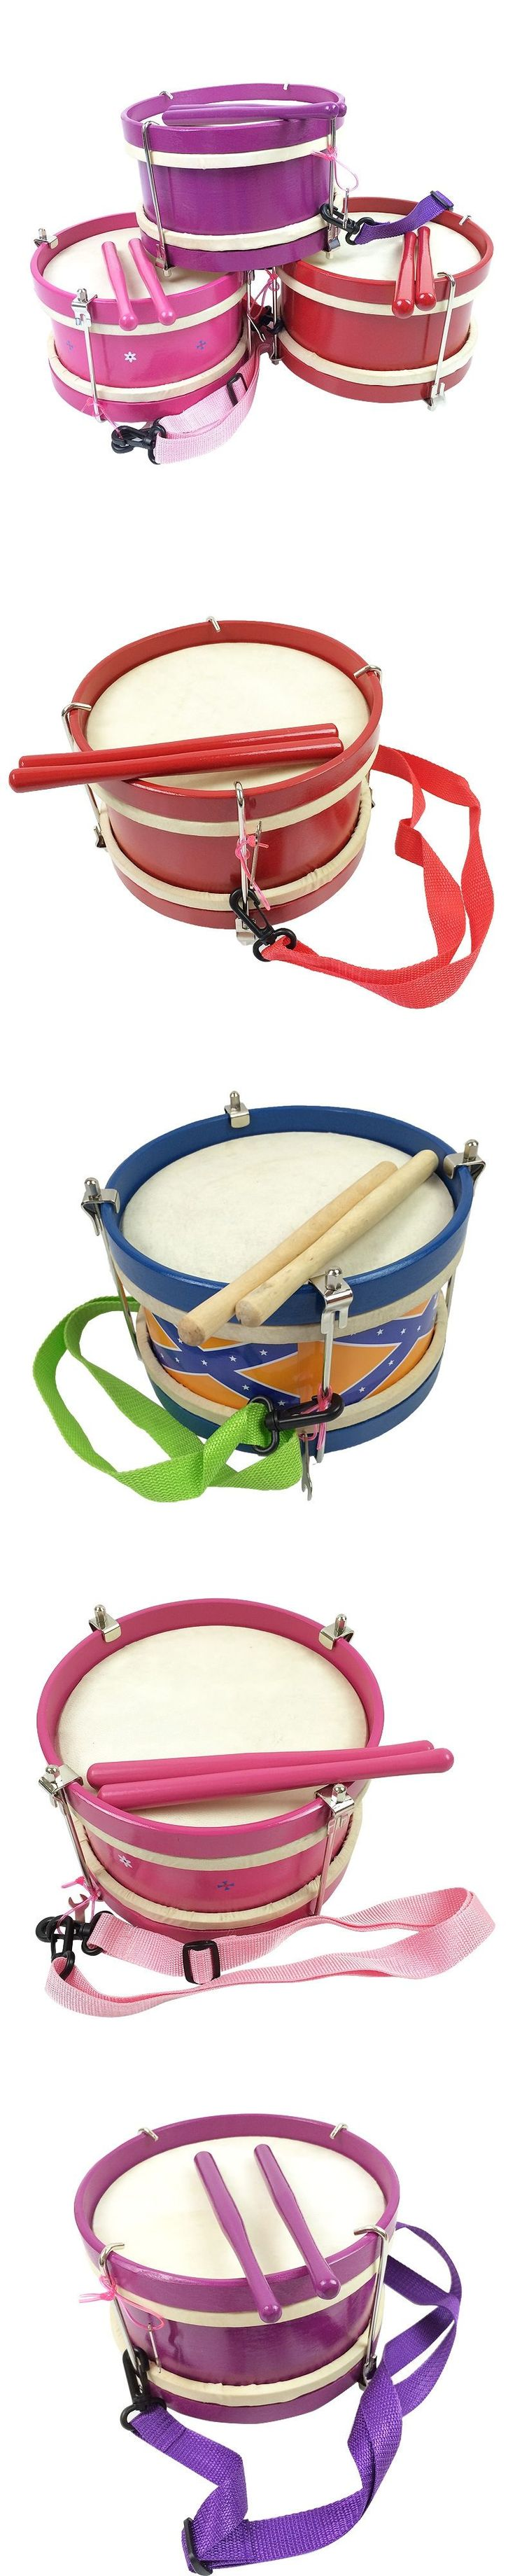 kids wooden drum toy musical instrument good gift for child baby toy 3 colors 20cm #AwesomeDrummers